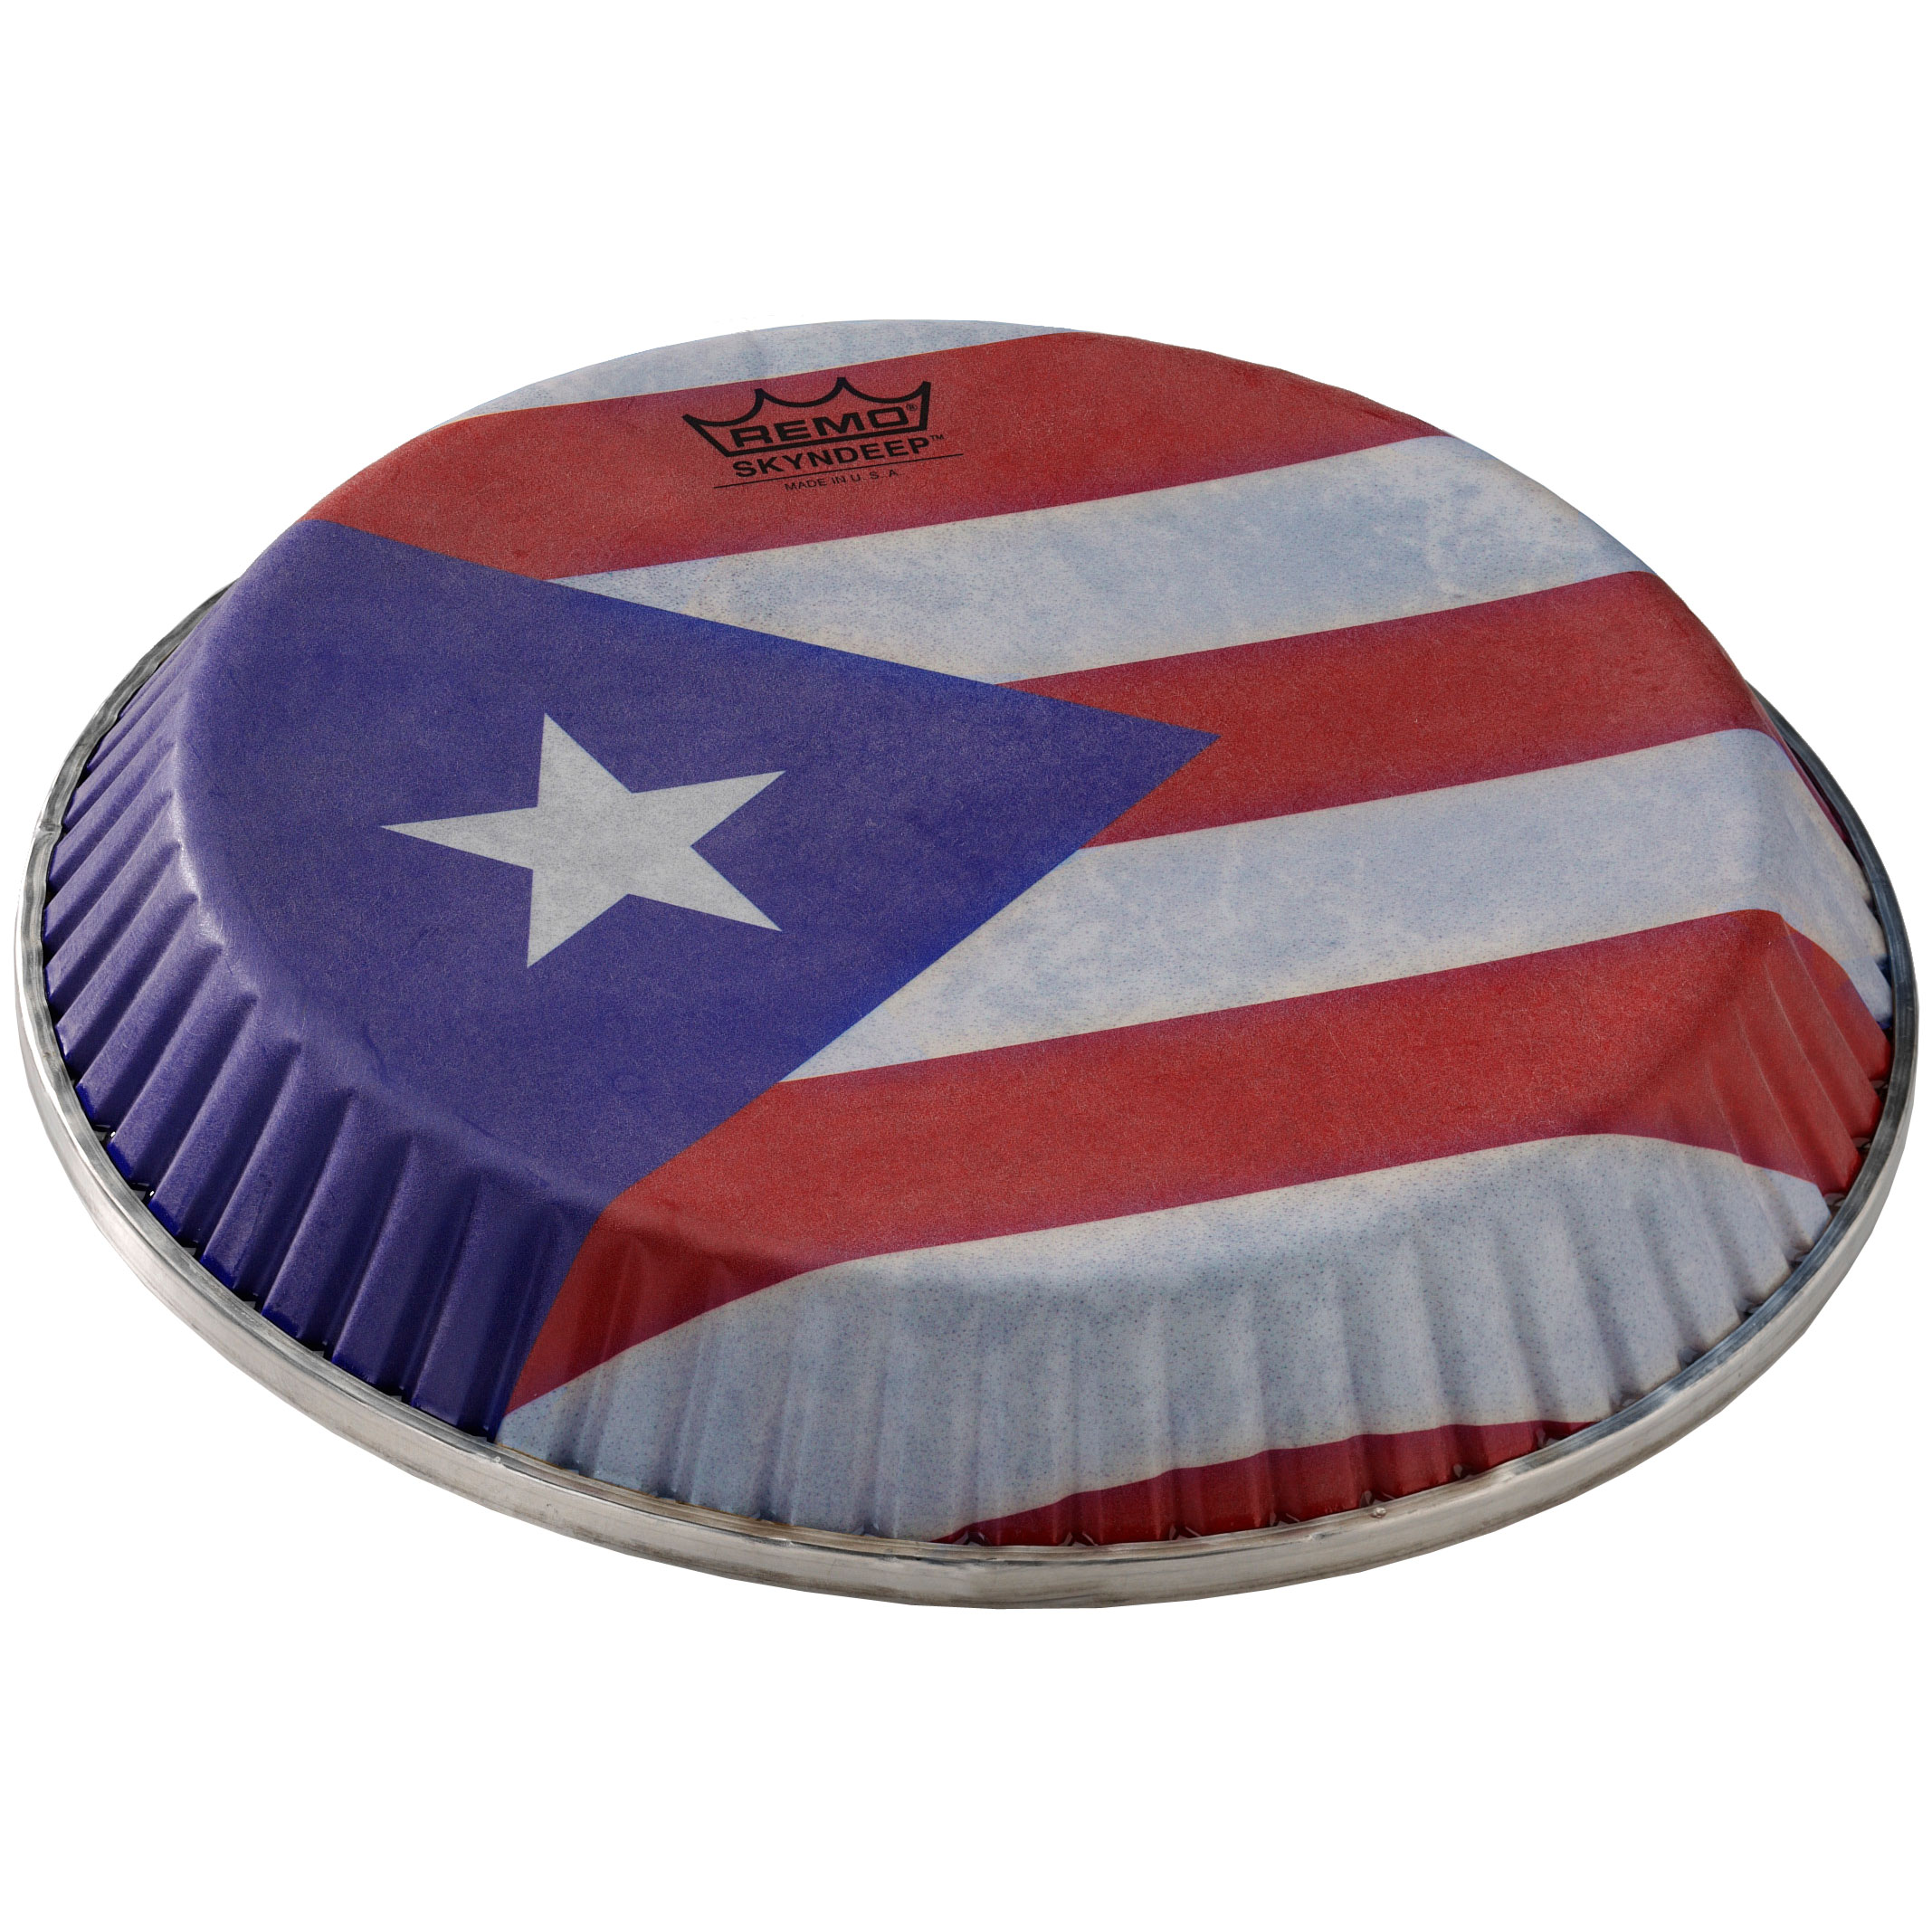 "Remo 9.75"" Symmetry Skyndeep Conga Drum Head (D2 Collar) with Puerto Rican Flag Graphic"